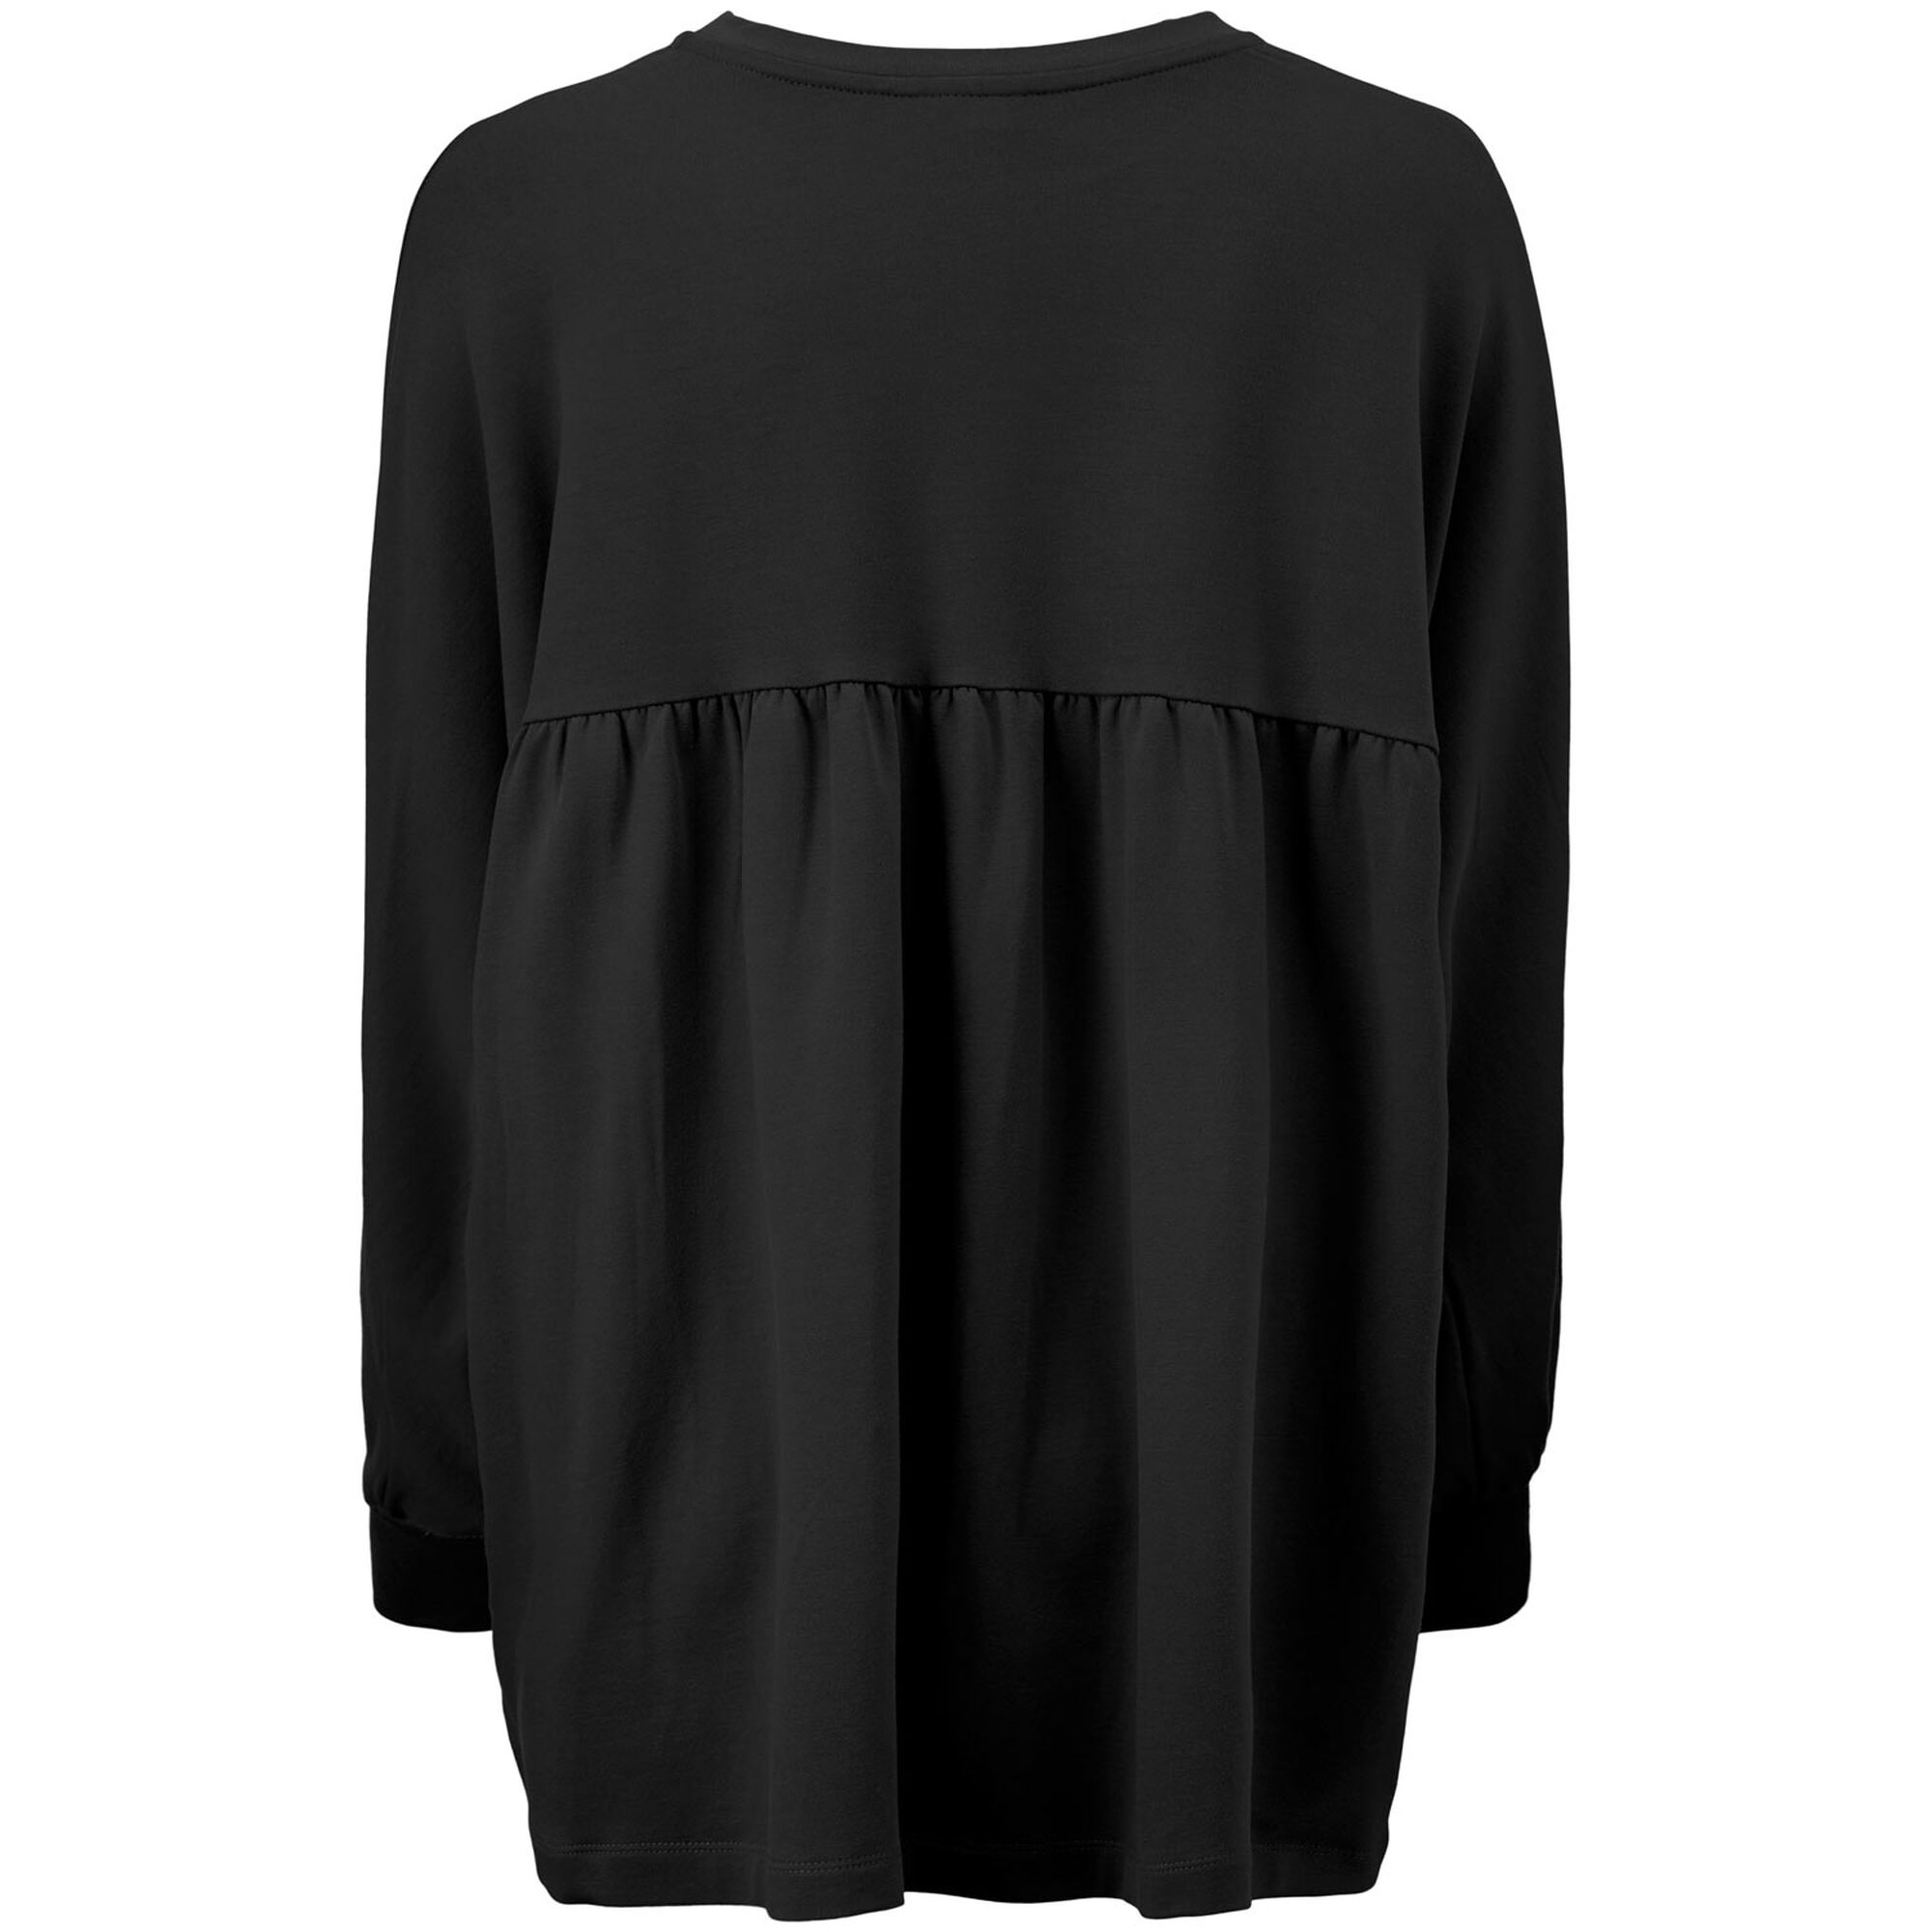 DEMA TOP, Black, hi-res